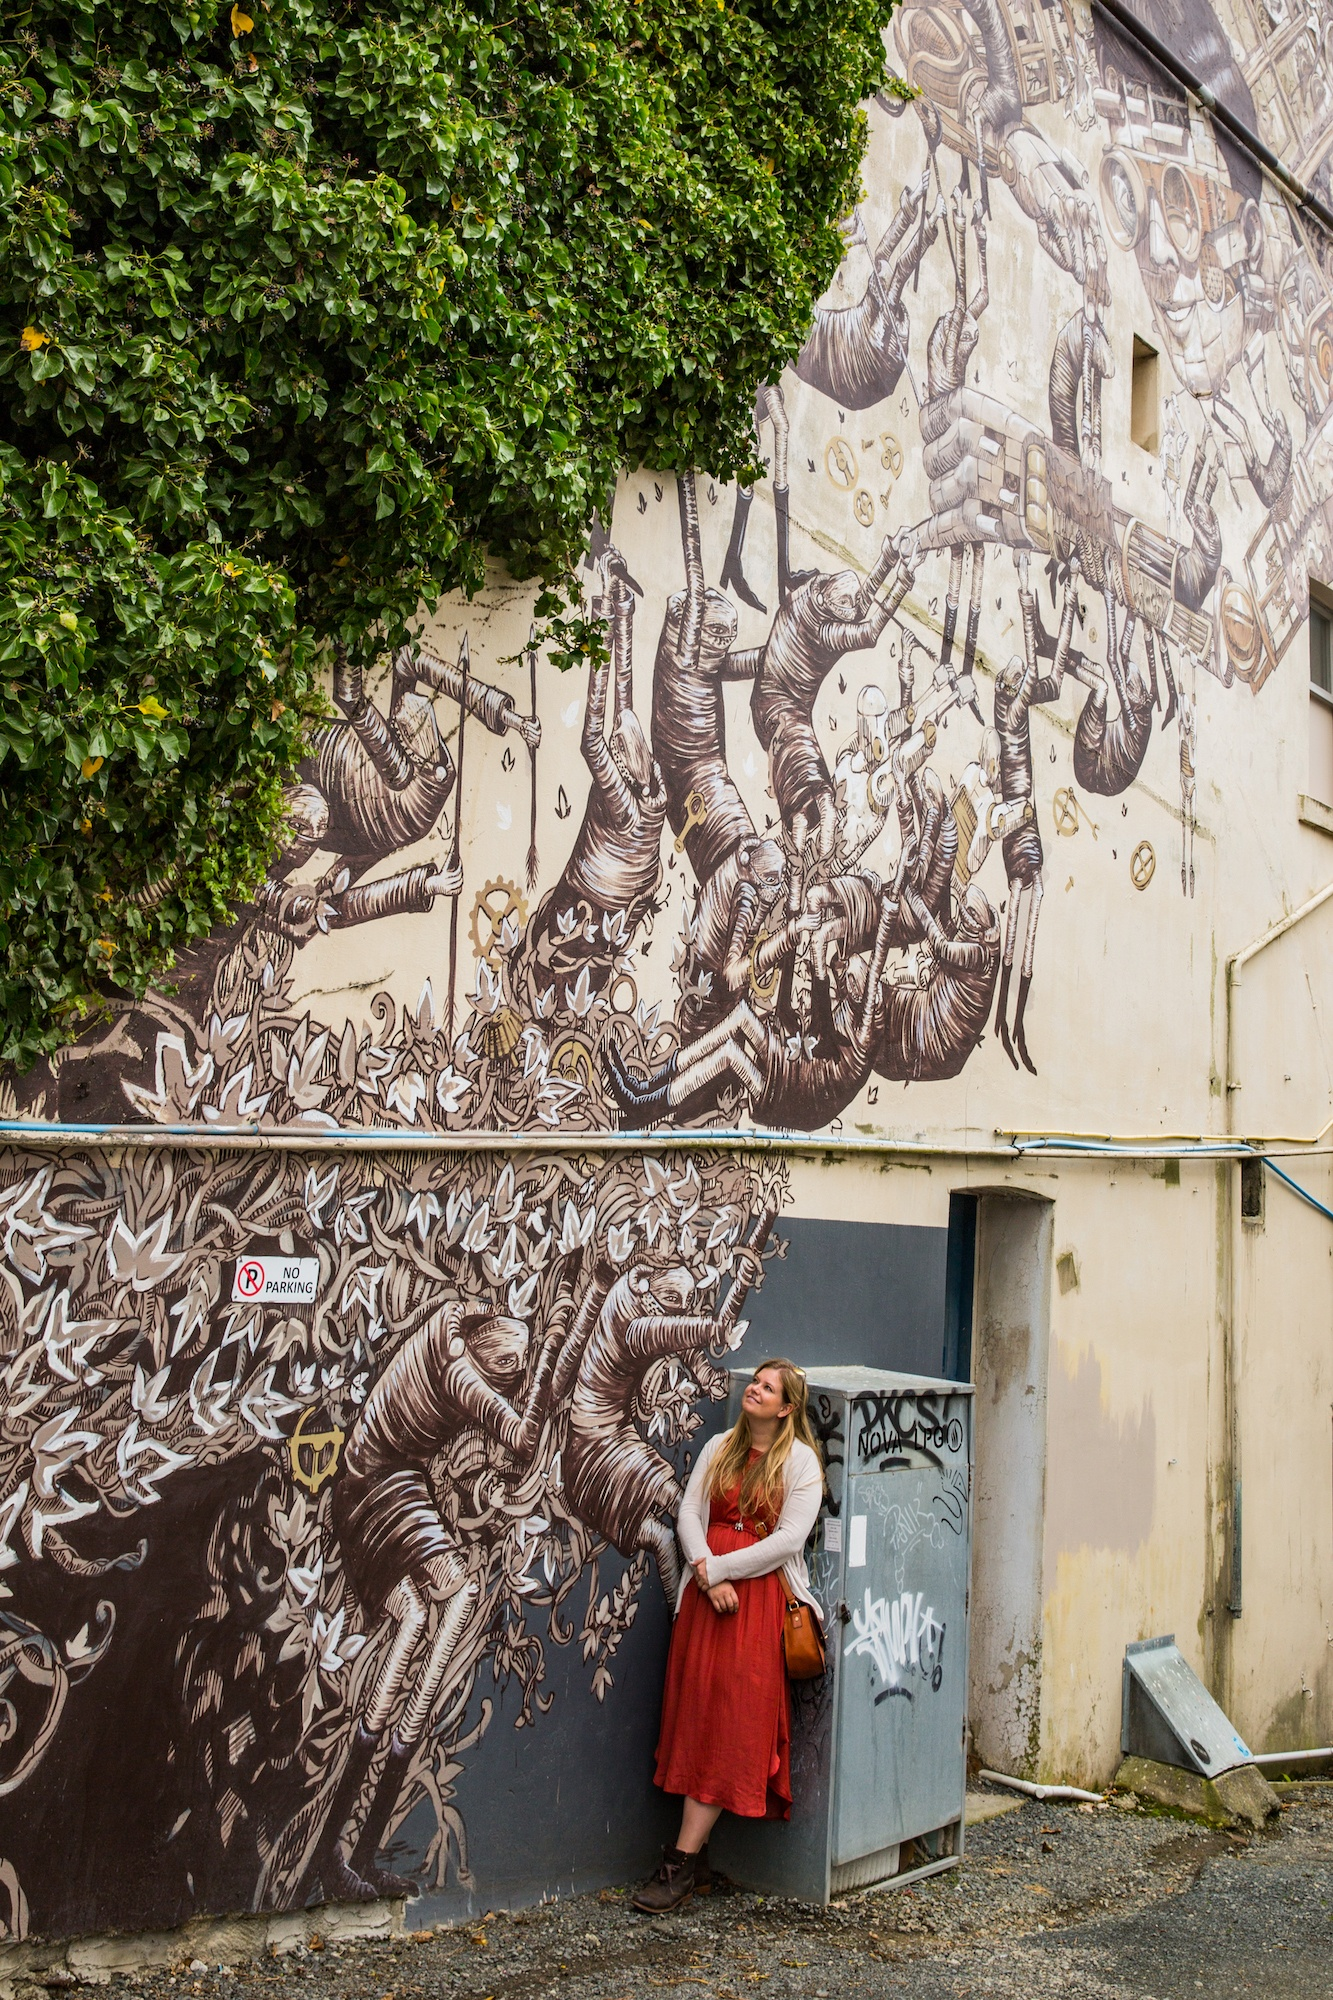 You are currently viewing The best street art in Dunedin, New Zealand